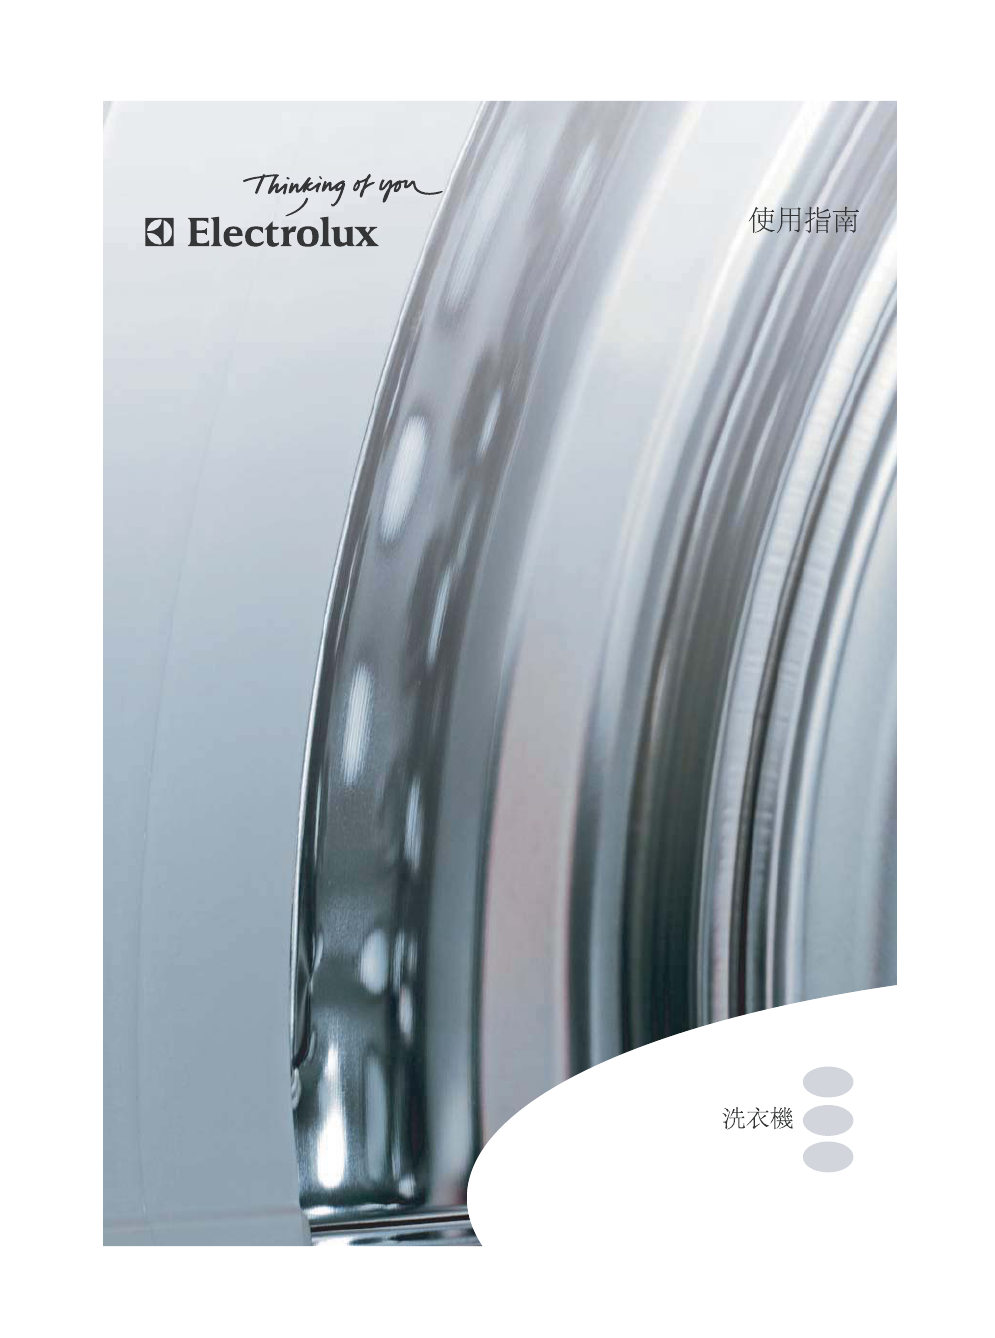 electrolux washer ewf 8576 user guide manualsonline com rh manualsonline com Vizio TV Manual Sony TV Parts Manual